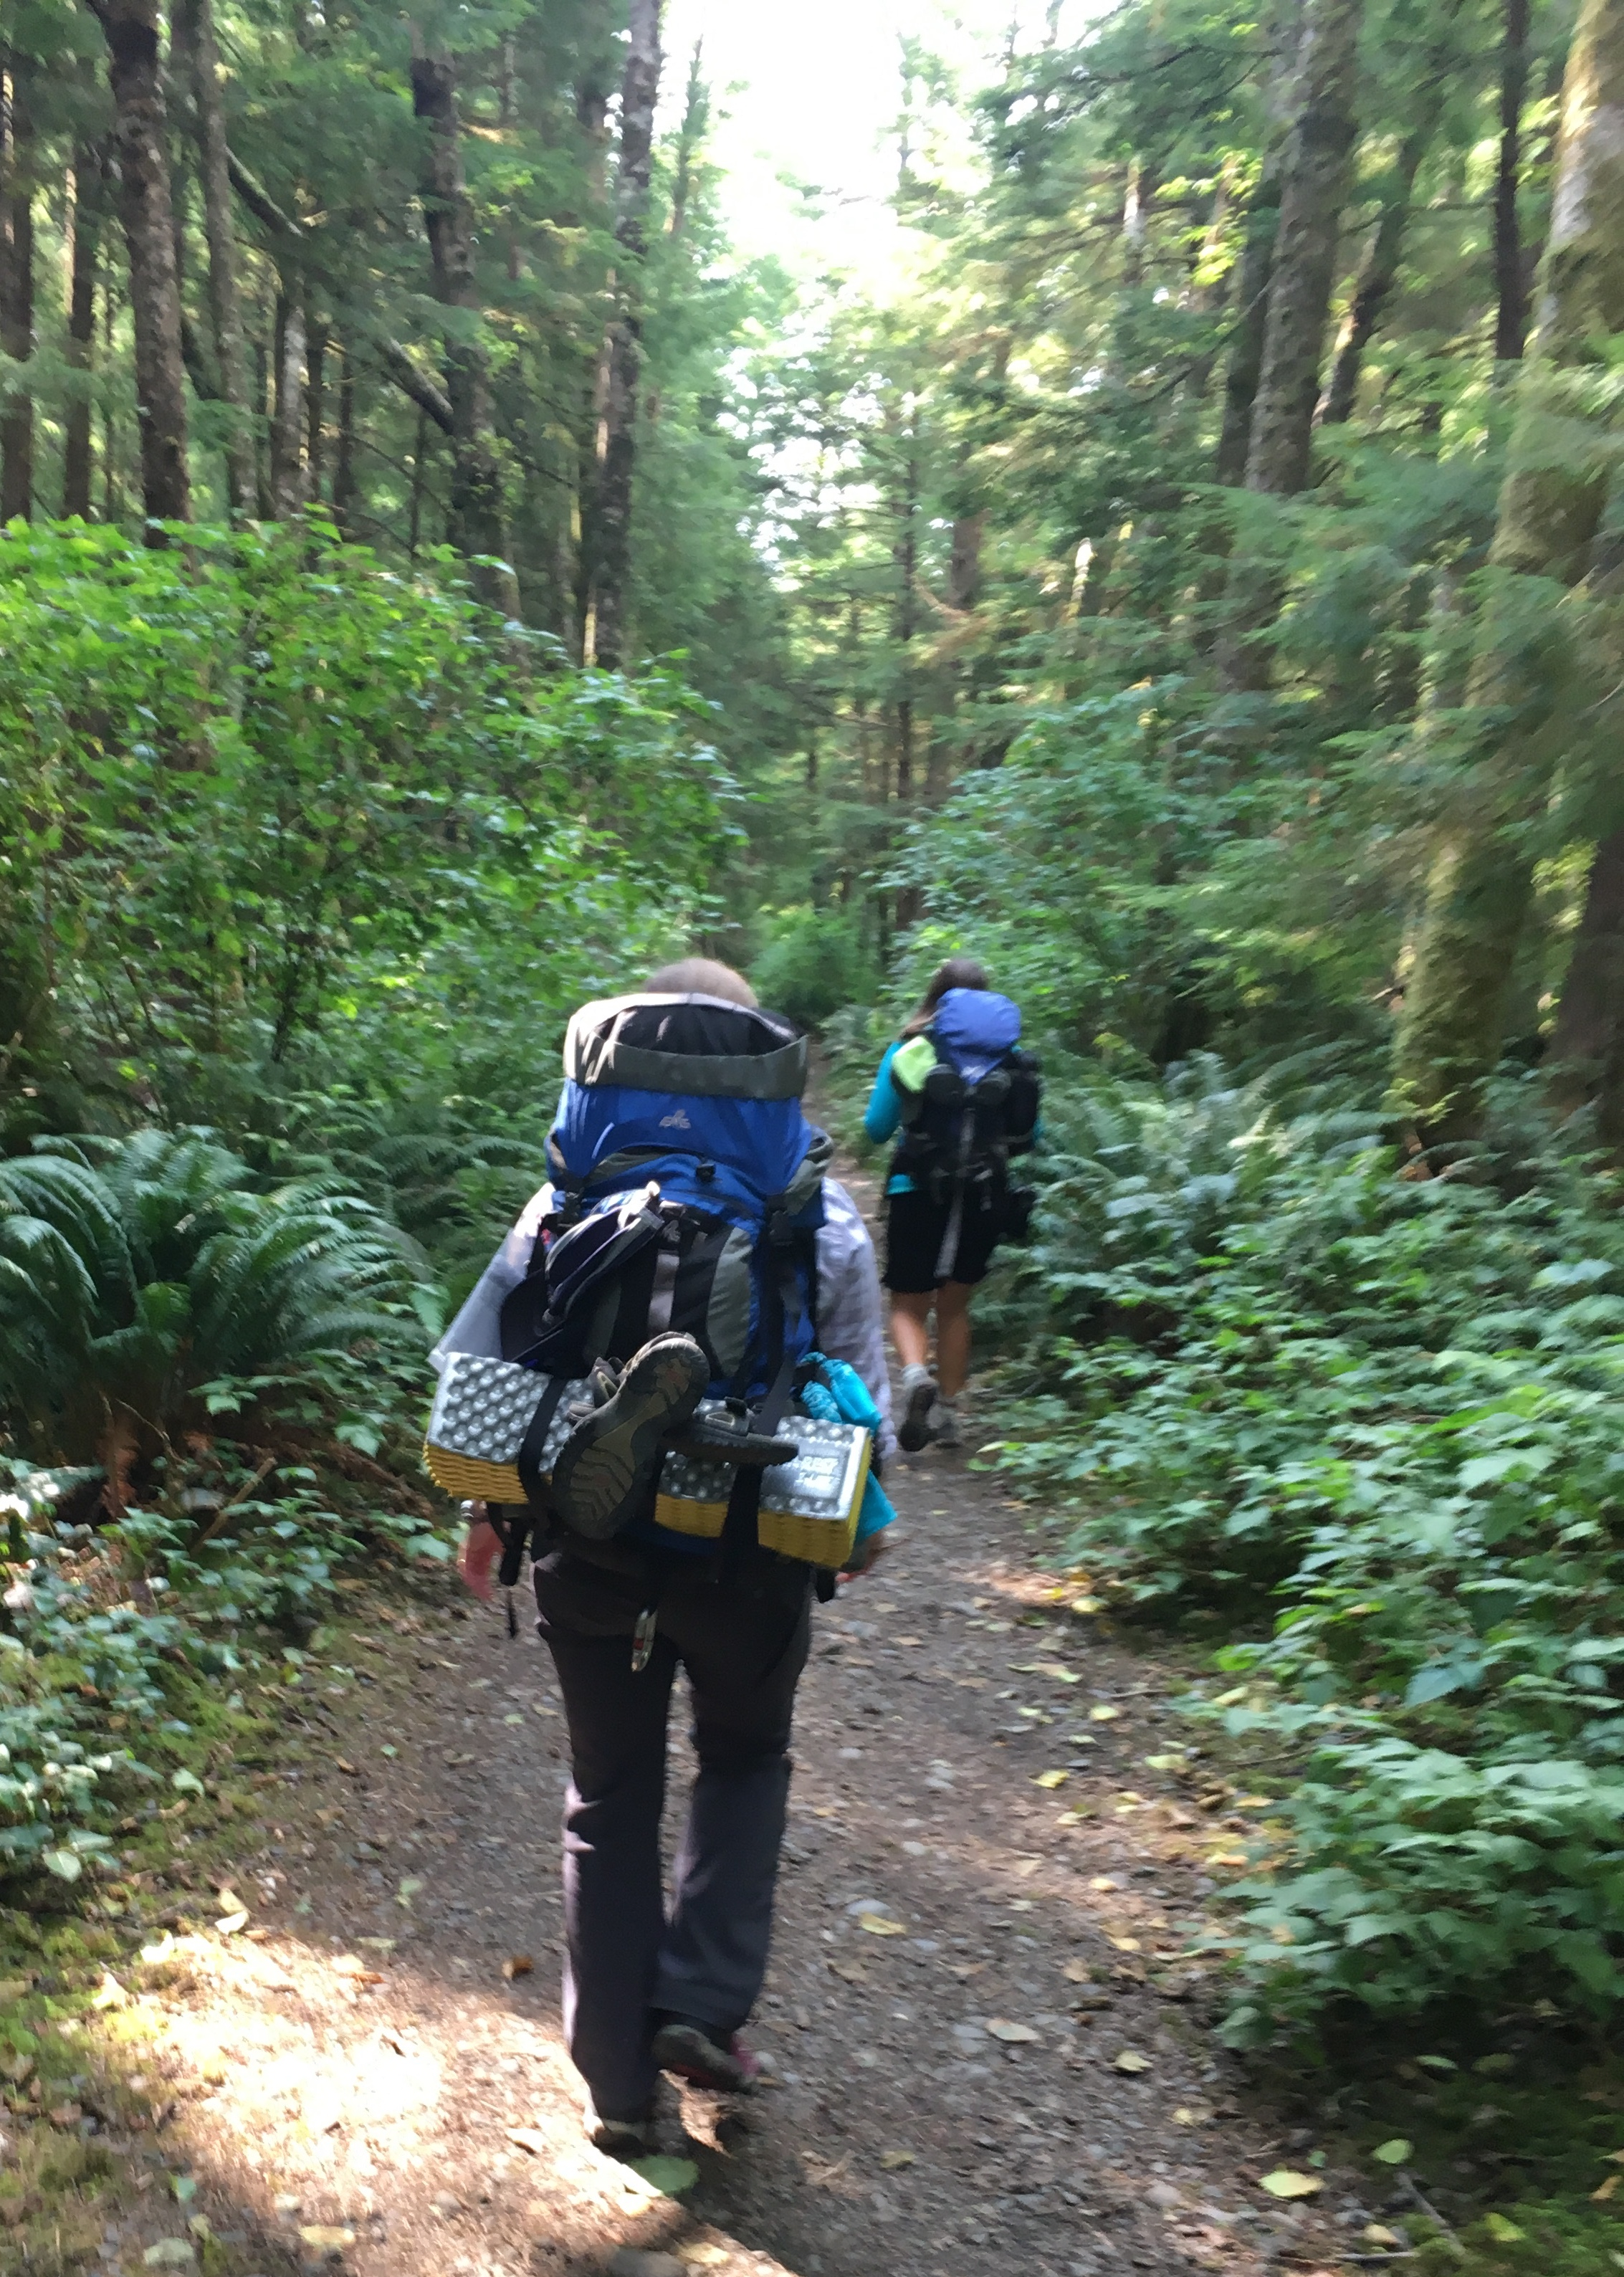 Backpacking on the South Coast Wilderness Trail last summer in my new boots!